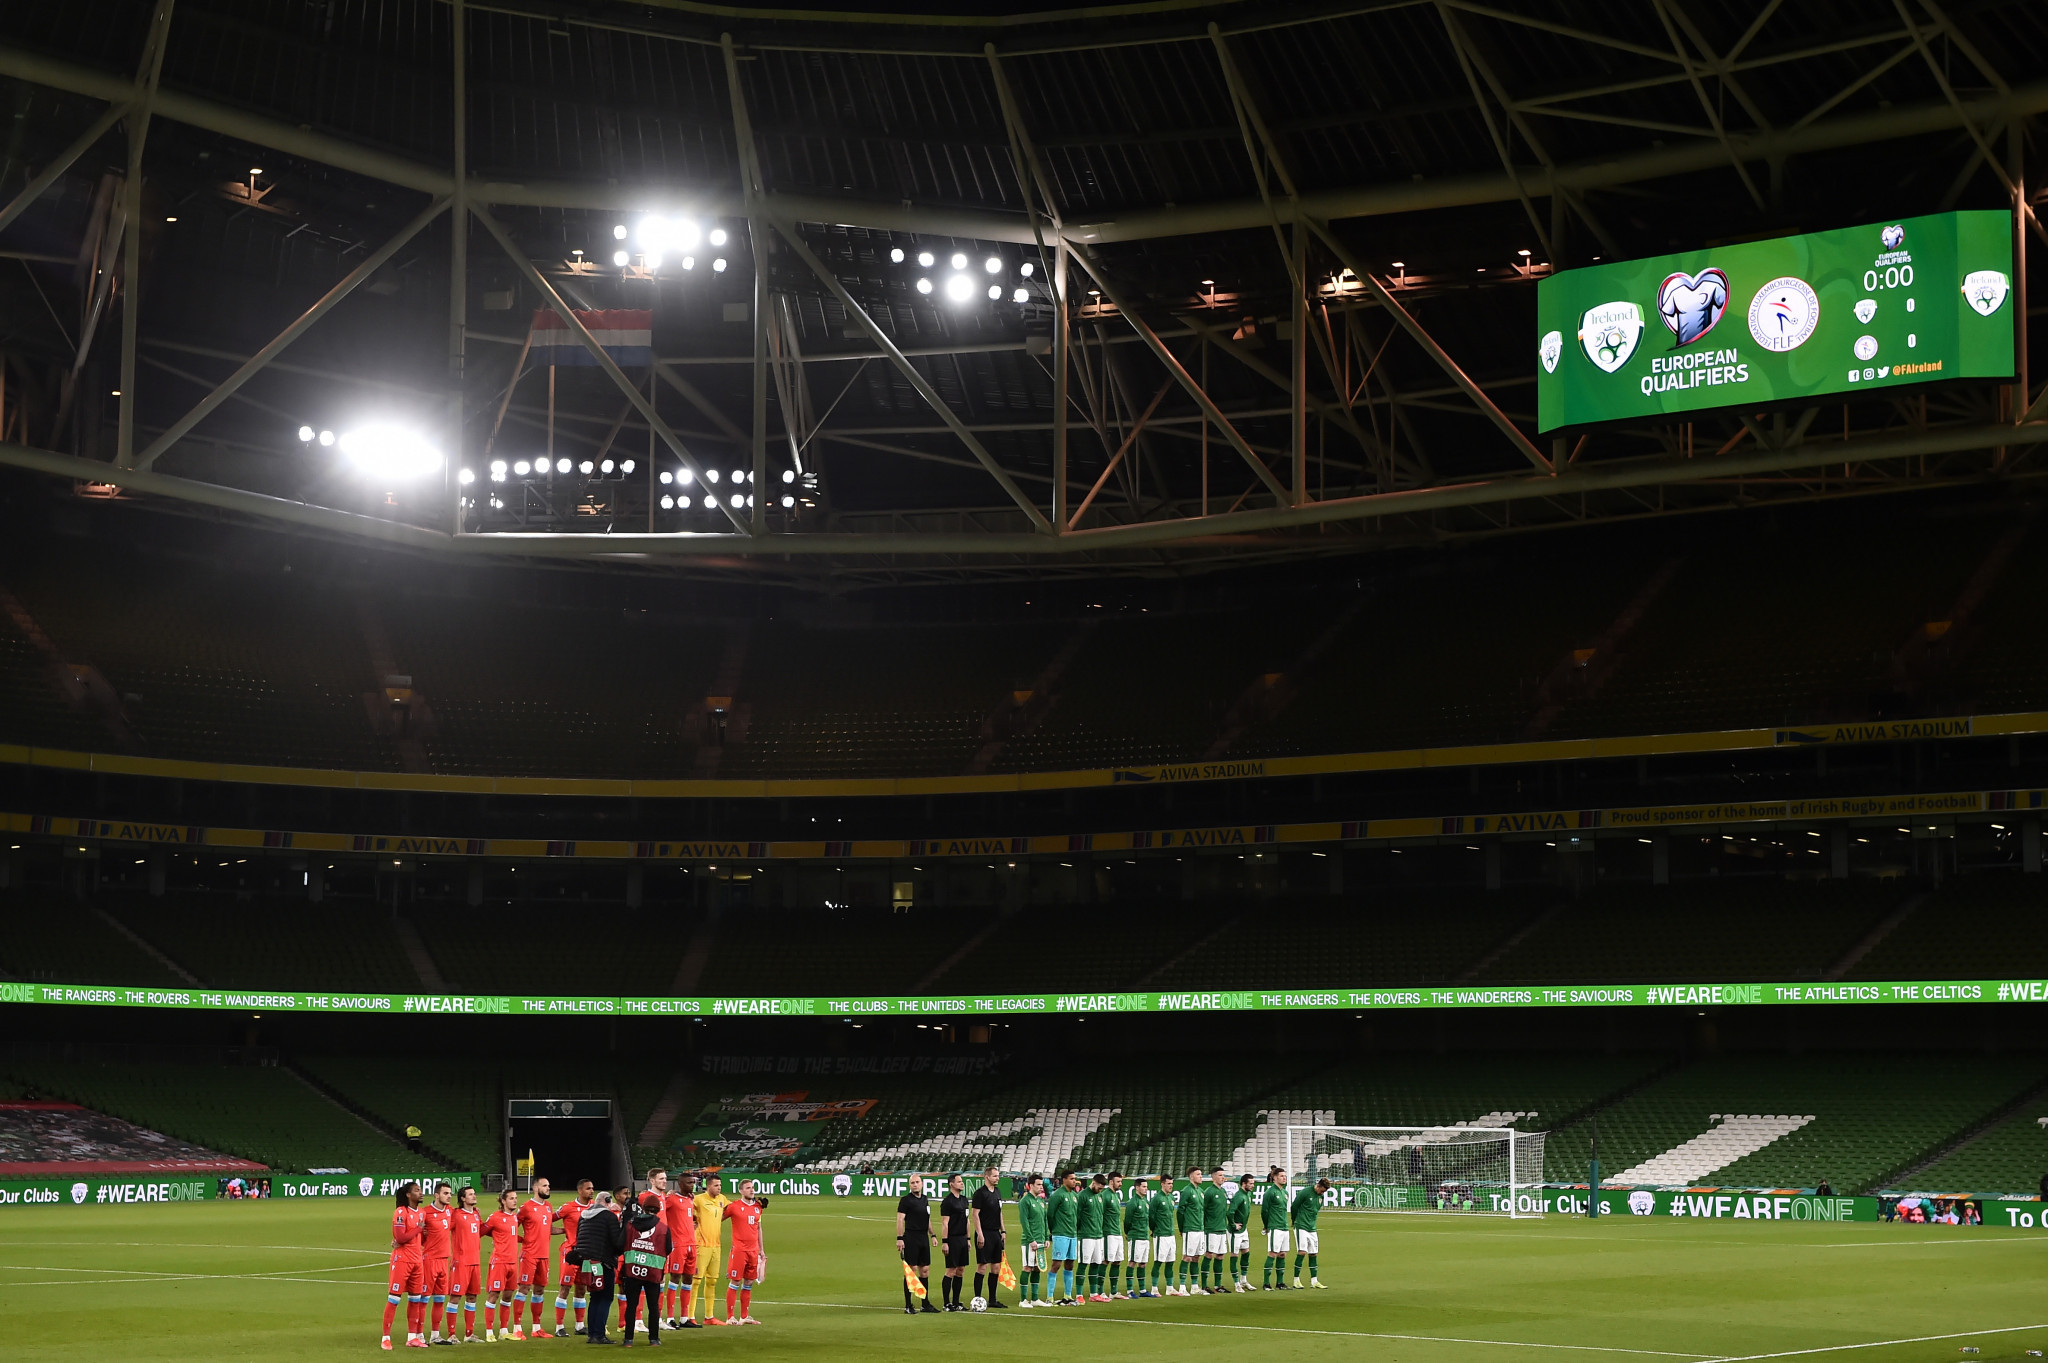 Dublin's Aviva Stadium faces being axed from the list of Euro 2020 host cities ©Getty Images